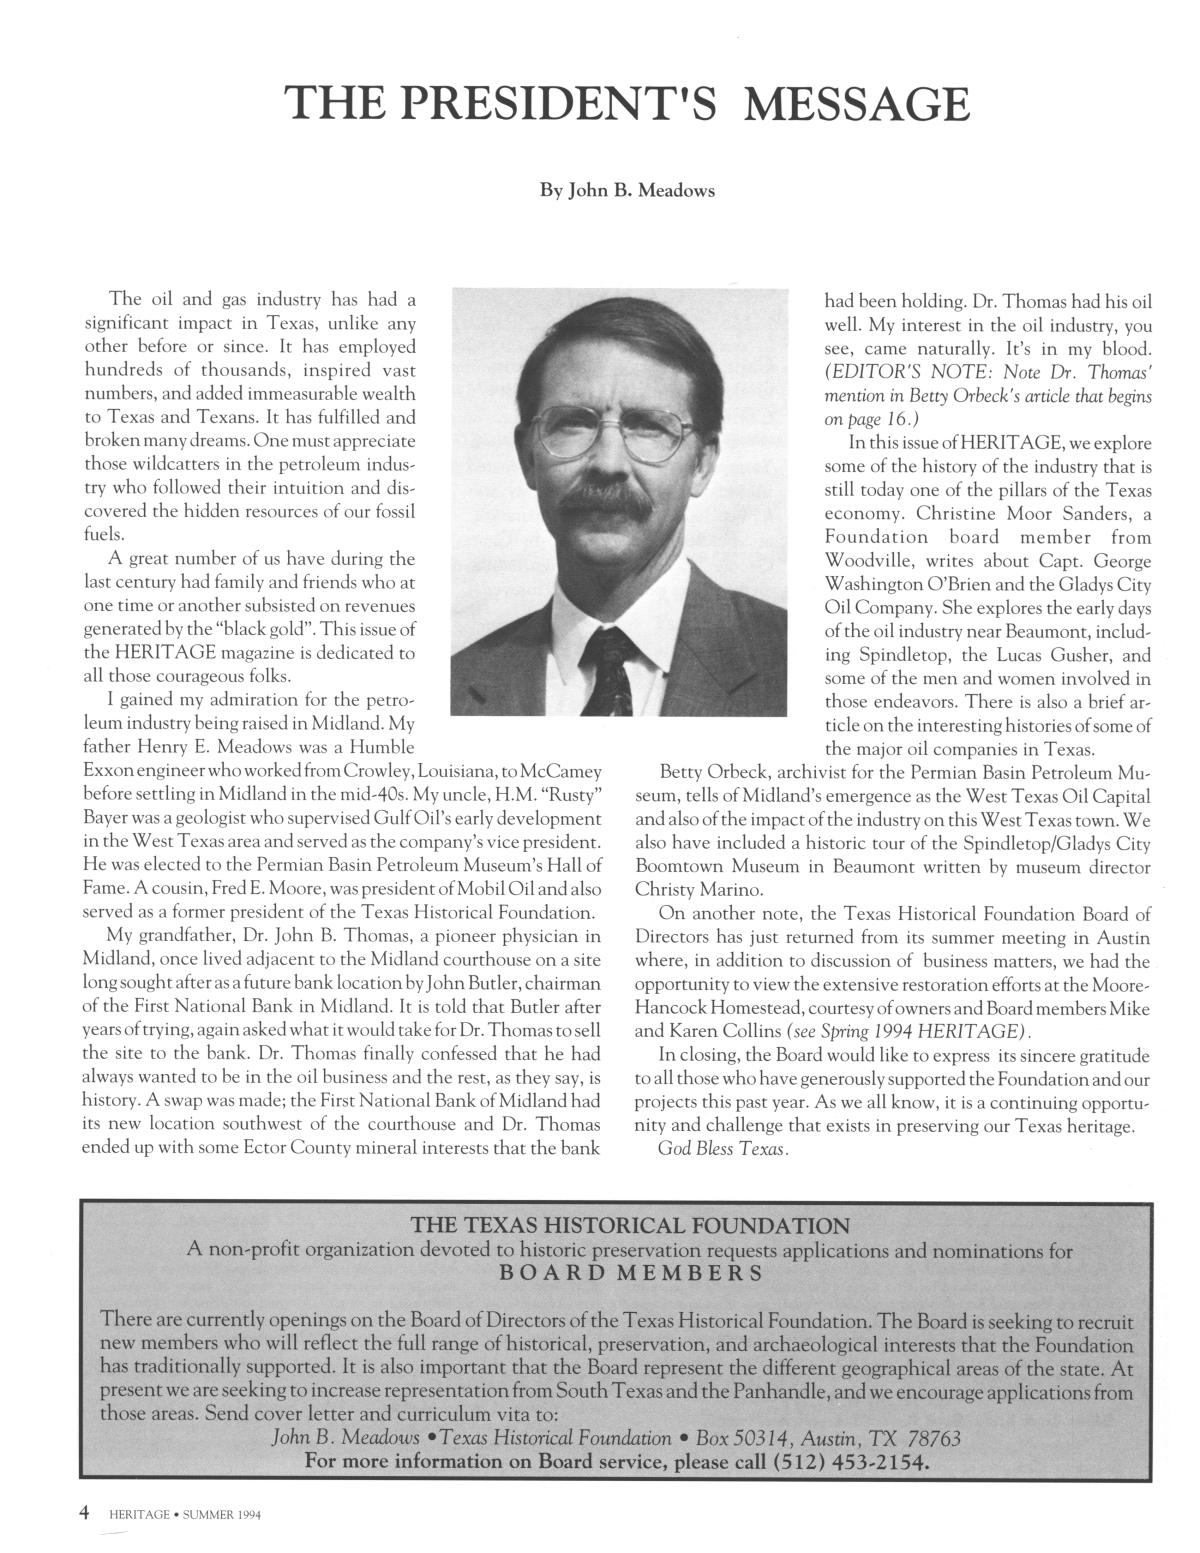 Heritage, Volume 12, Number 3, Summer 1994                                                                                                      4